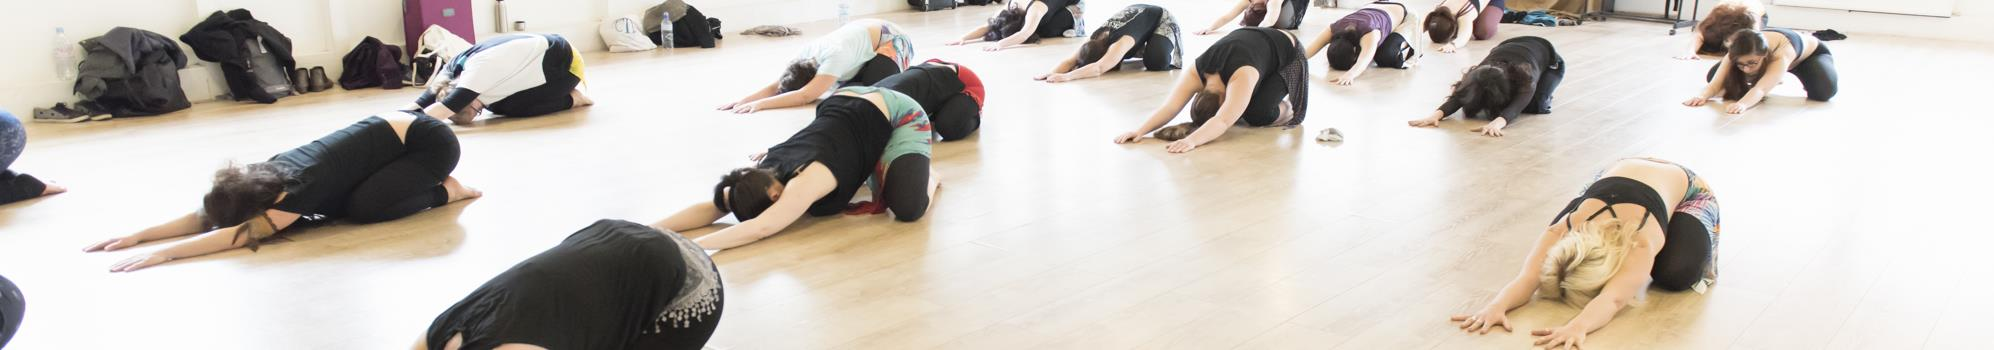 Inscription cours Association Omi Danse & Yoga 2018-2019 - Association Omi Danse & Yoga